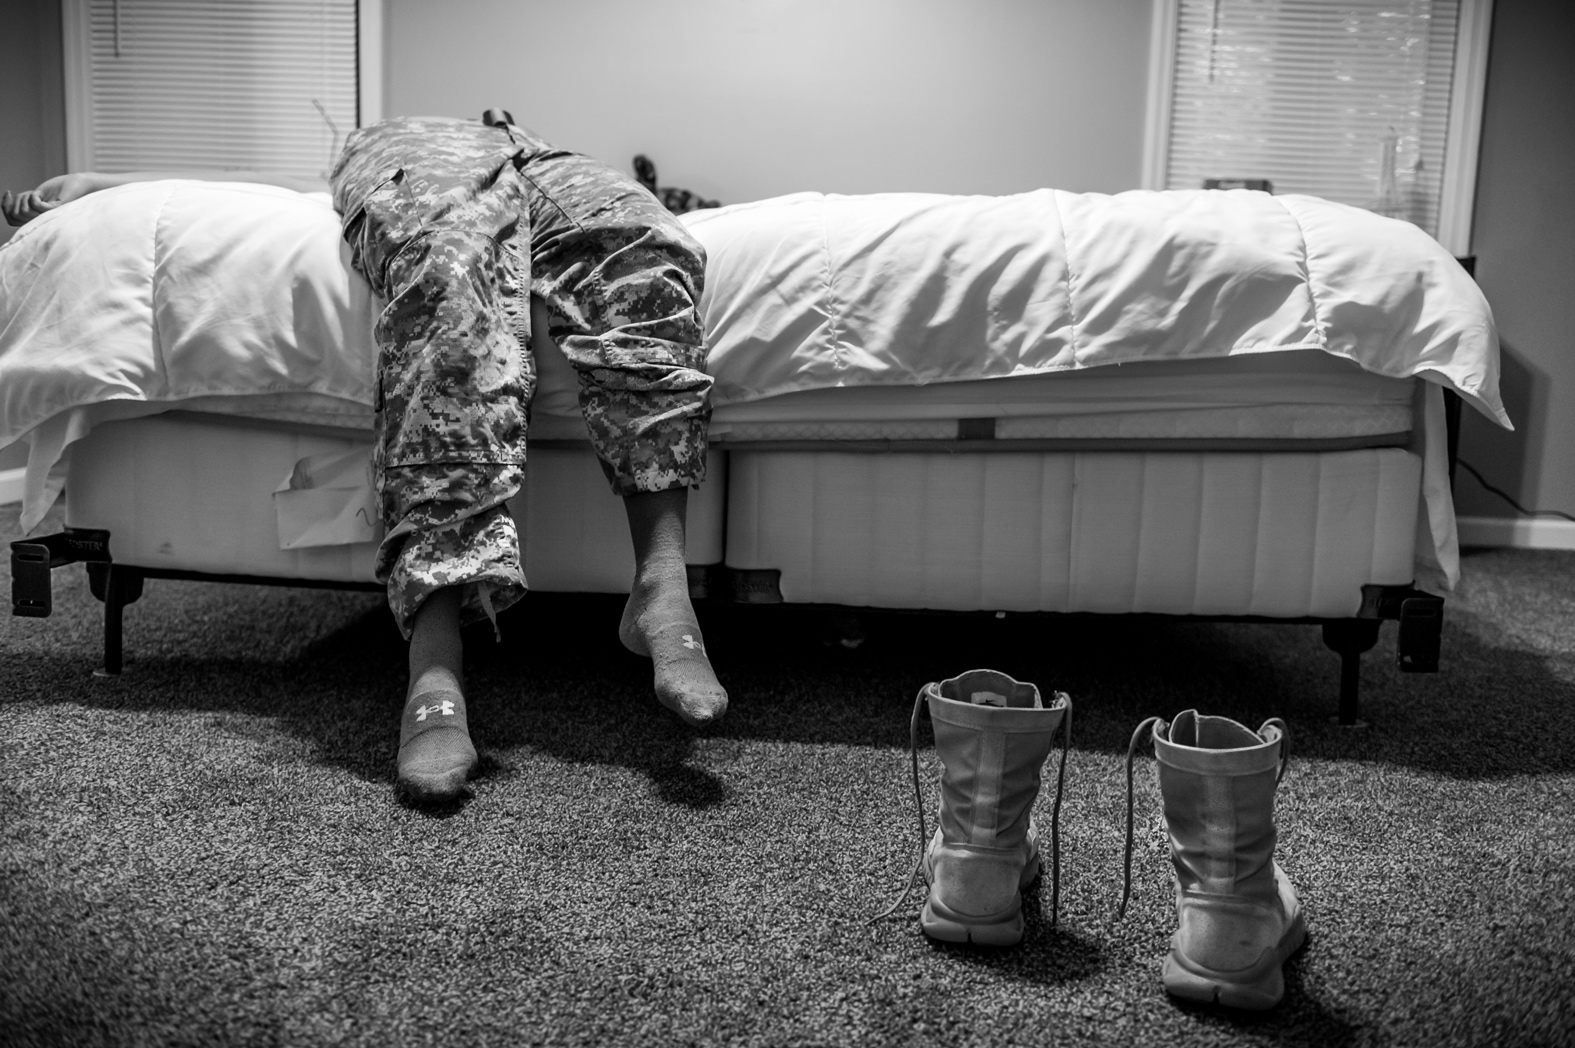 US Army Spc. Natasha Schuette, 21, was sexually assaulted by her drill sergeant during basic training and was subsequently harassed by other drill sergeants after reporting the incident at Fort Jackson, South Carolina. Photo: Mary F. Calvert.